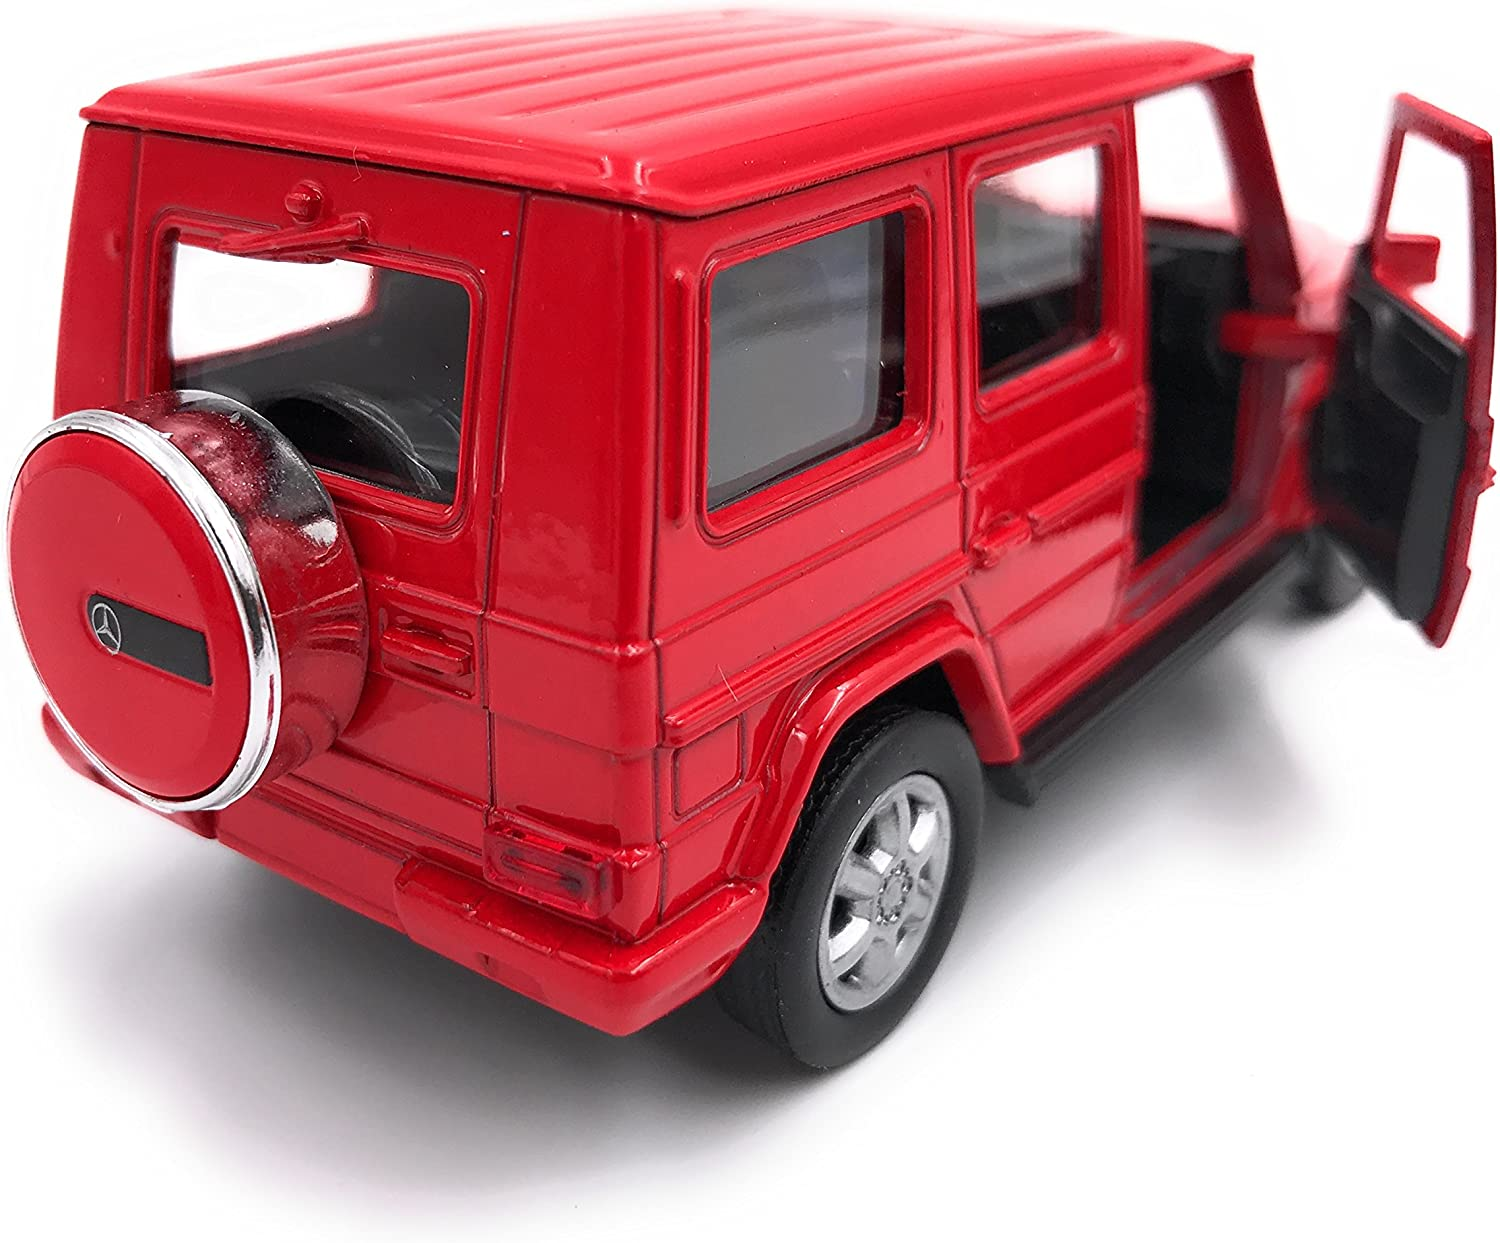 34-1 Welly Mercedes Benz Classe G Mod/èle Auto Car License Product 1 39 Red